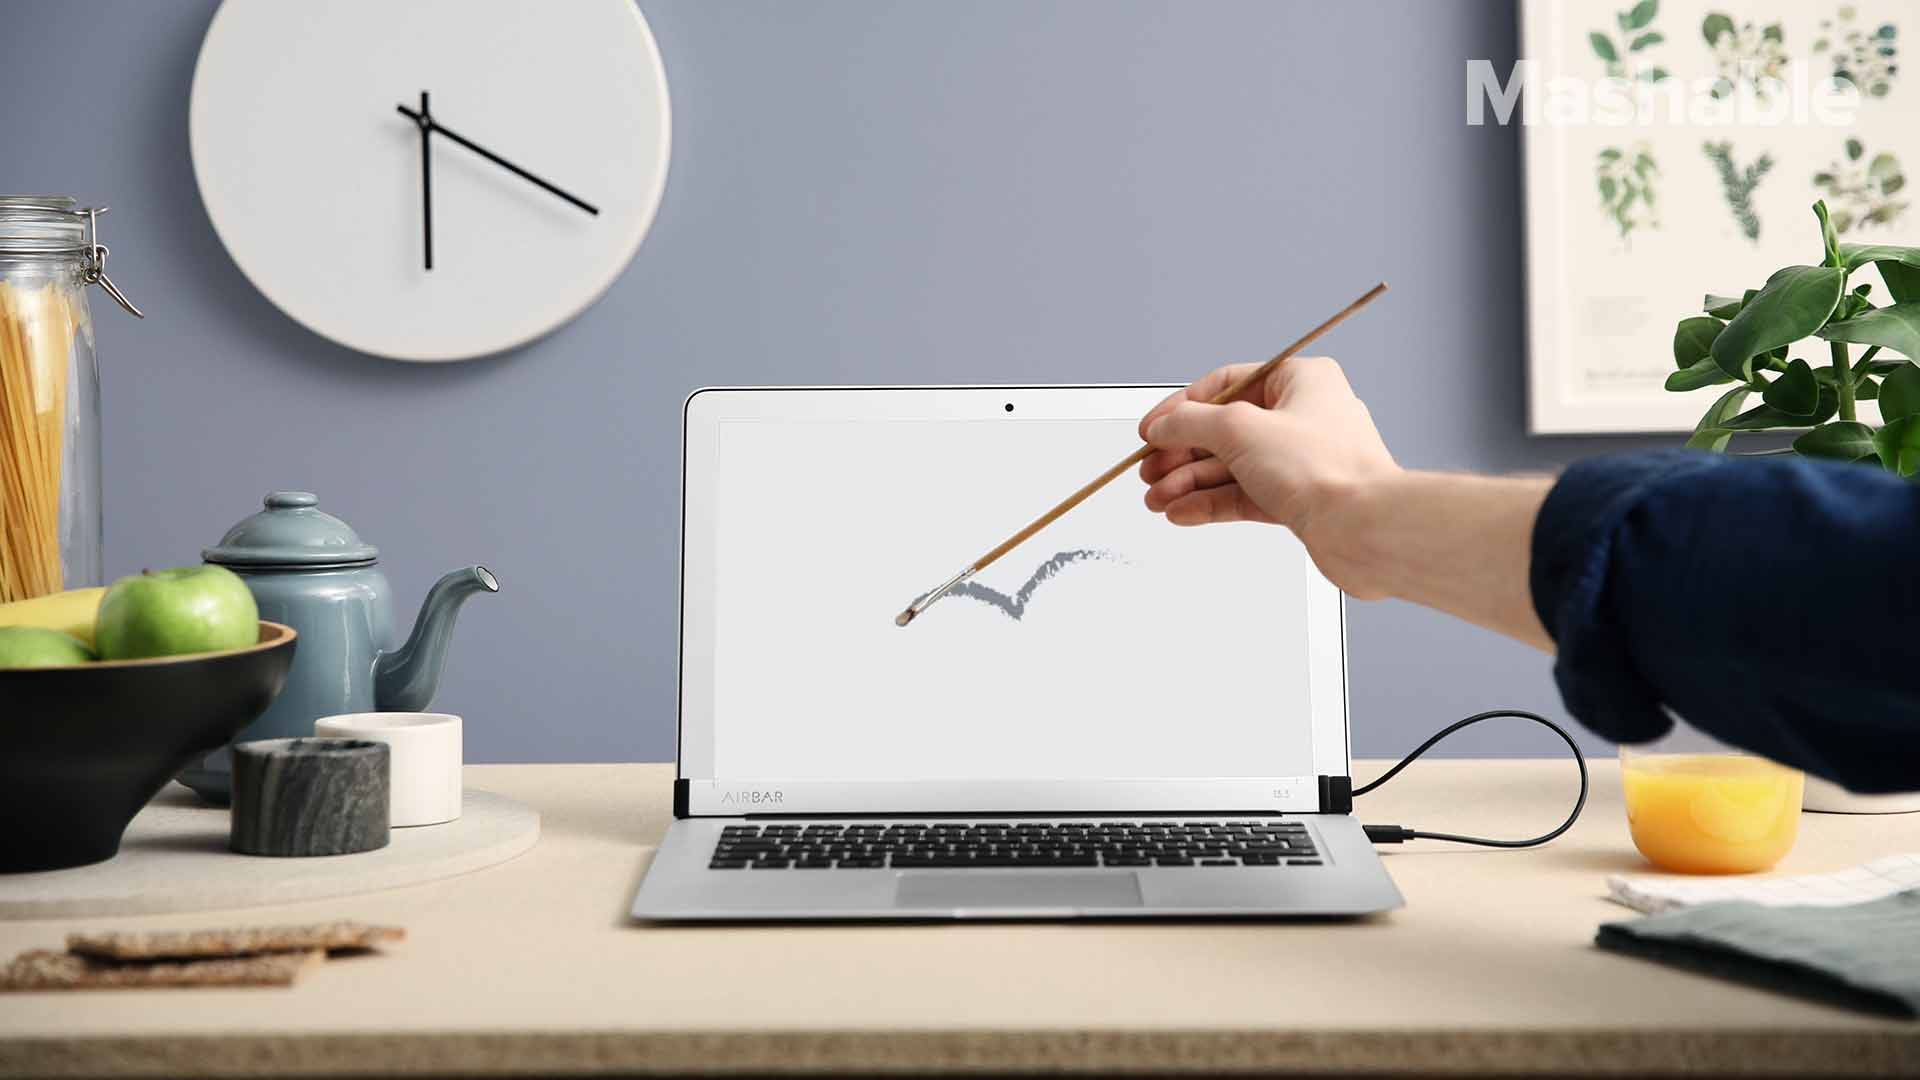 Turn your laptop into a touchscreen with this ingenious magnetic bar https://t.co/w9nO9y9JIC